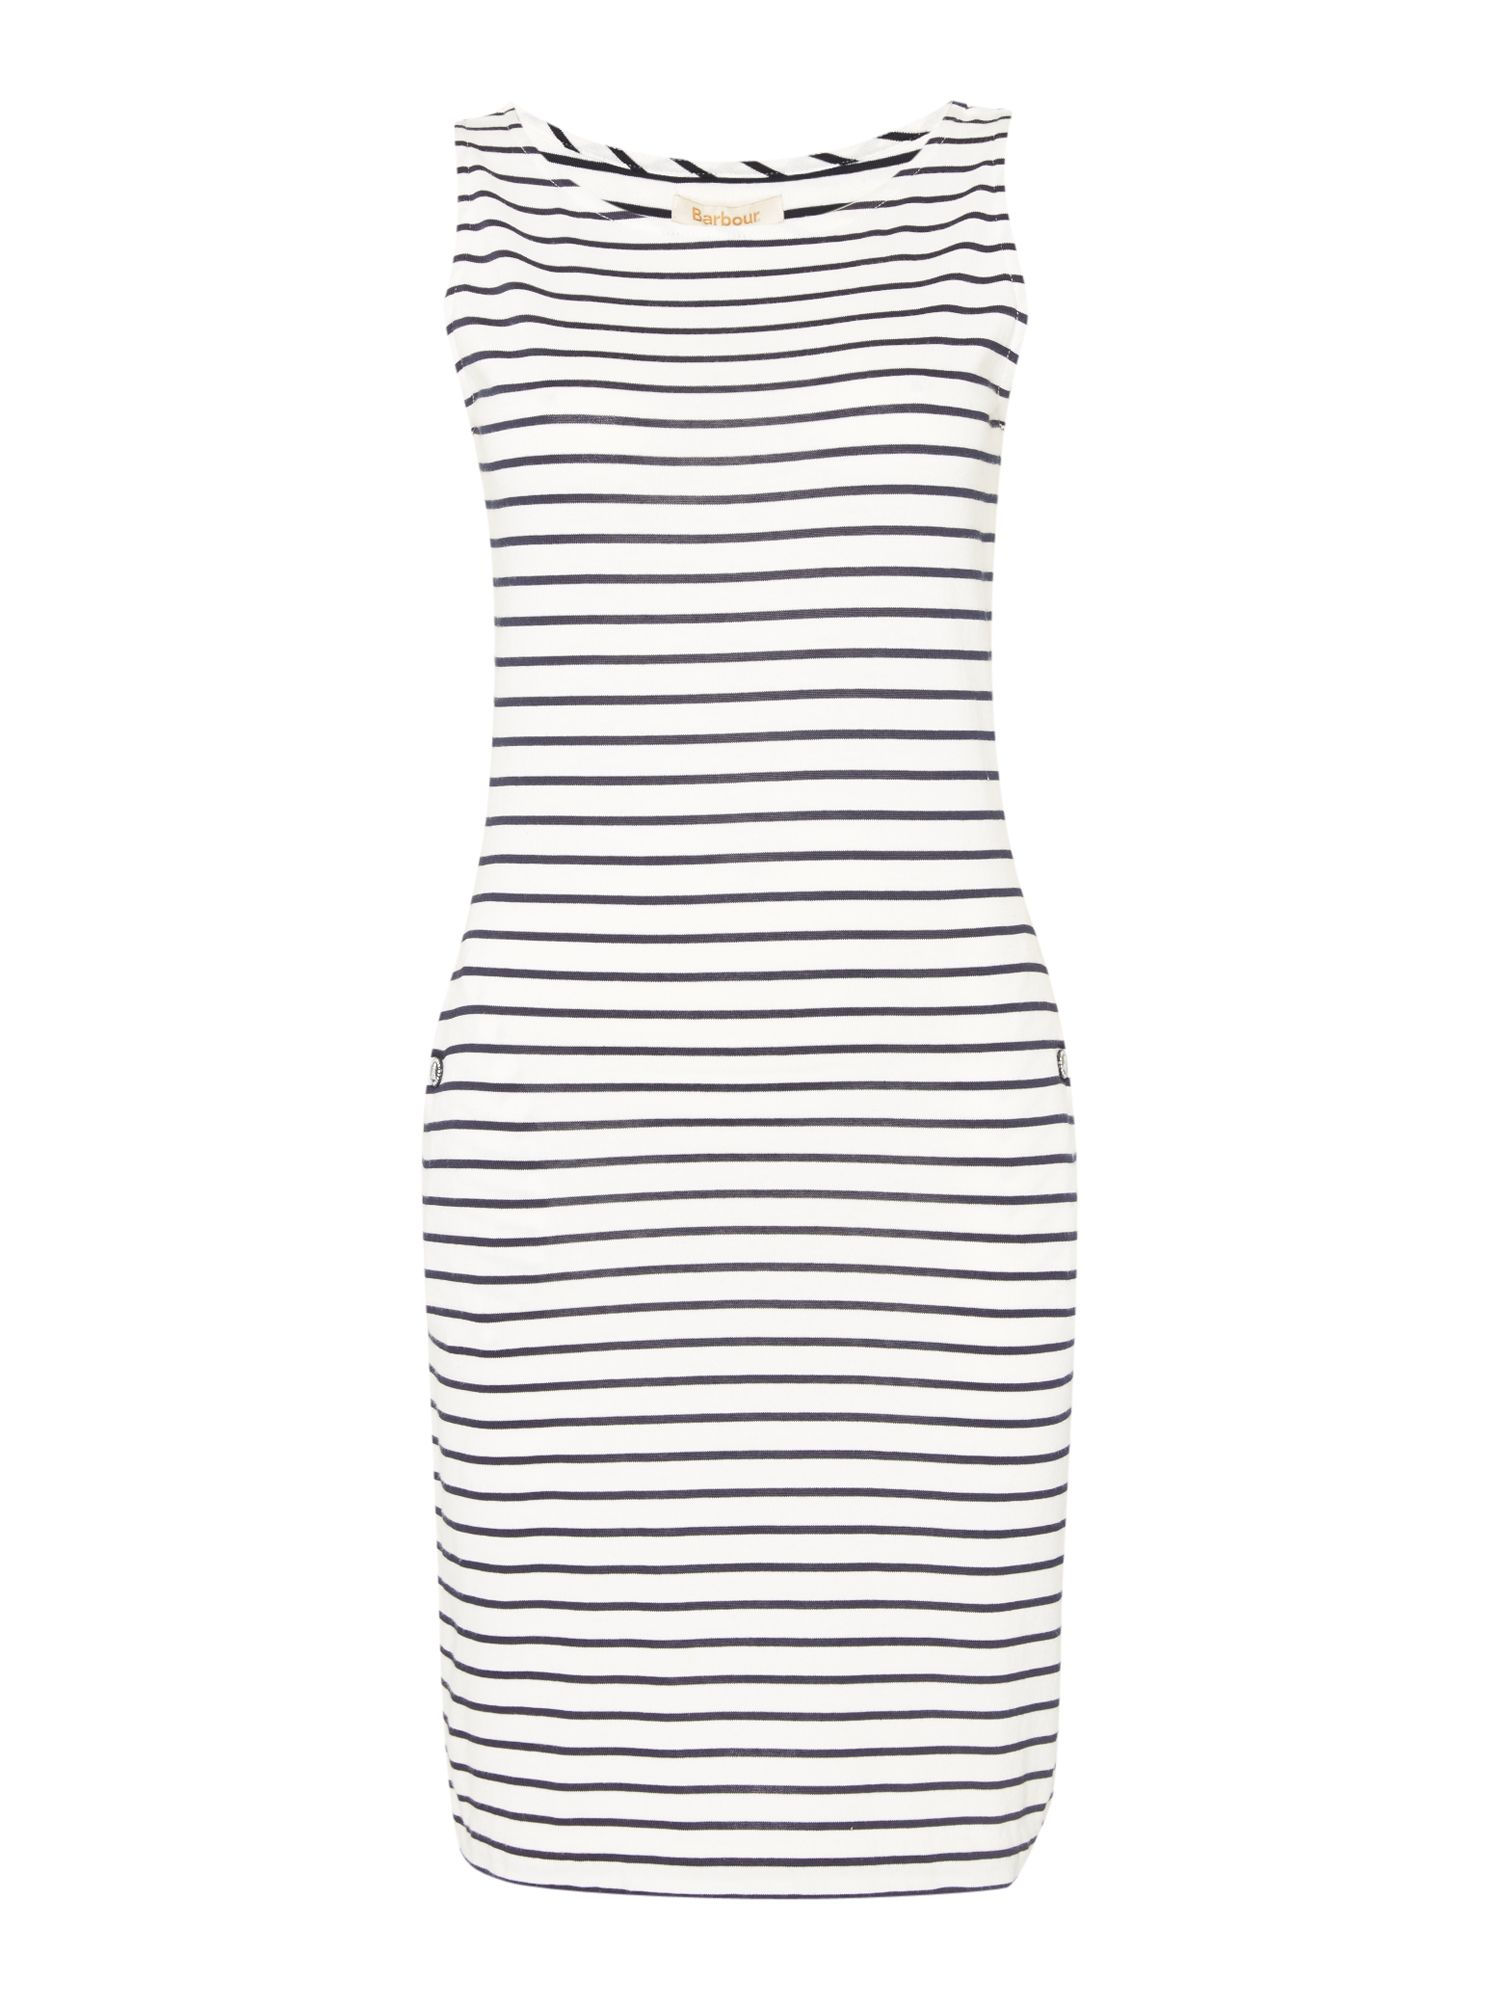 Barbour Dalmore stripe jersey shift dress, White & Blue